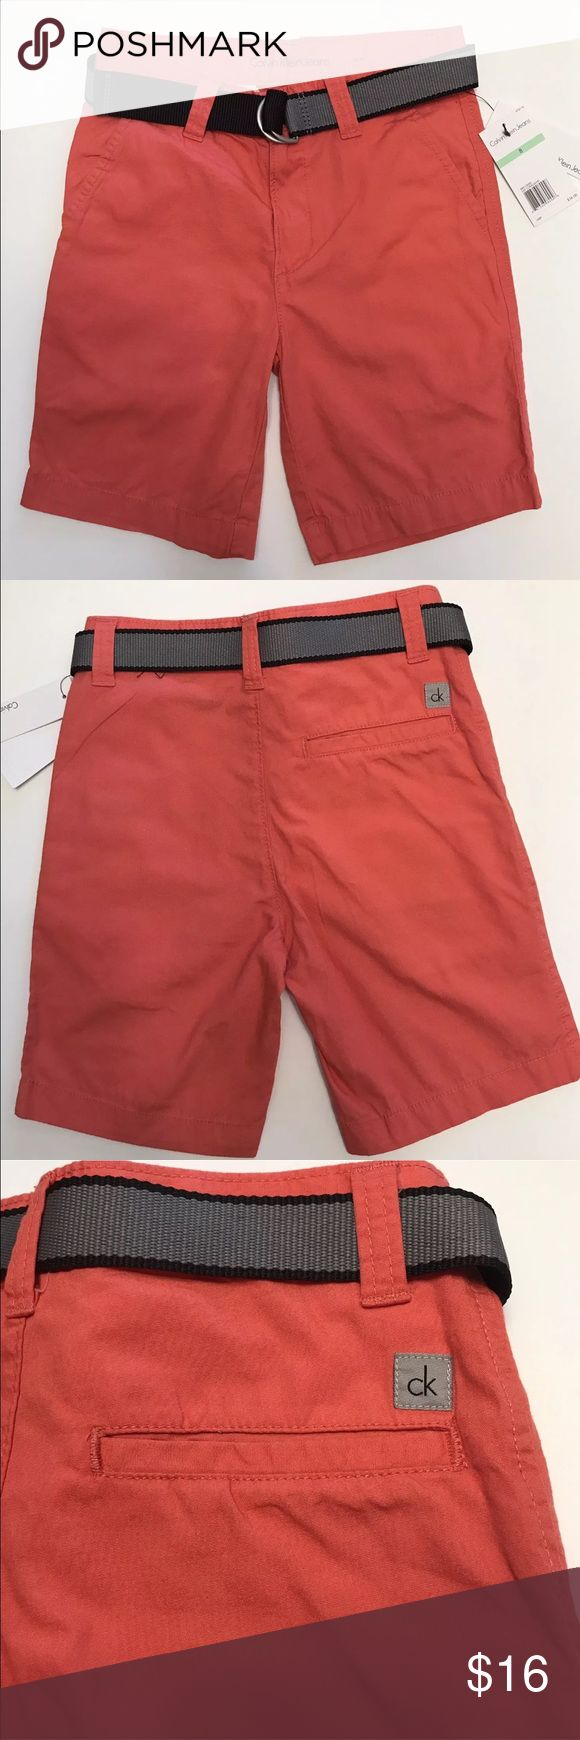 """Calvin Klein Boys Shorts Sz 8 Coral Sand NWT PRODUCT DESCRIPTION:  This pair's whisper-soft cotton fabric keeps cuties cool and comfy during playtime, while the adjustable belt cinches for a customized fit.  100% cotton  Machine wash; tumble dry  Imported  Calvin Klein Jeans size chart  Boys' Pants  SizeHeightWeightChestWaistHips  851-53""""60-69 lbs.27""""23.5""""29"""" Calvin Klein Bottoms Shorts"""